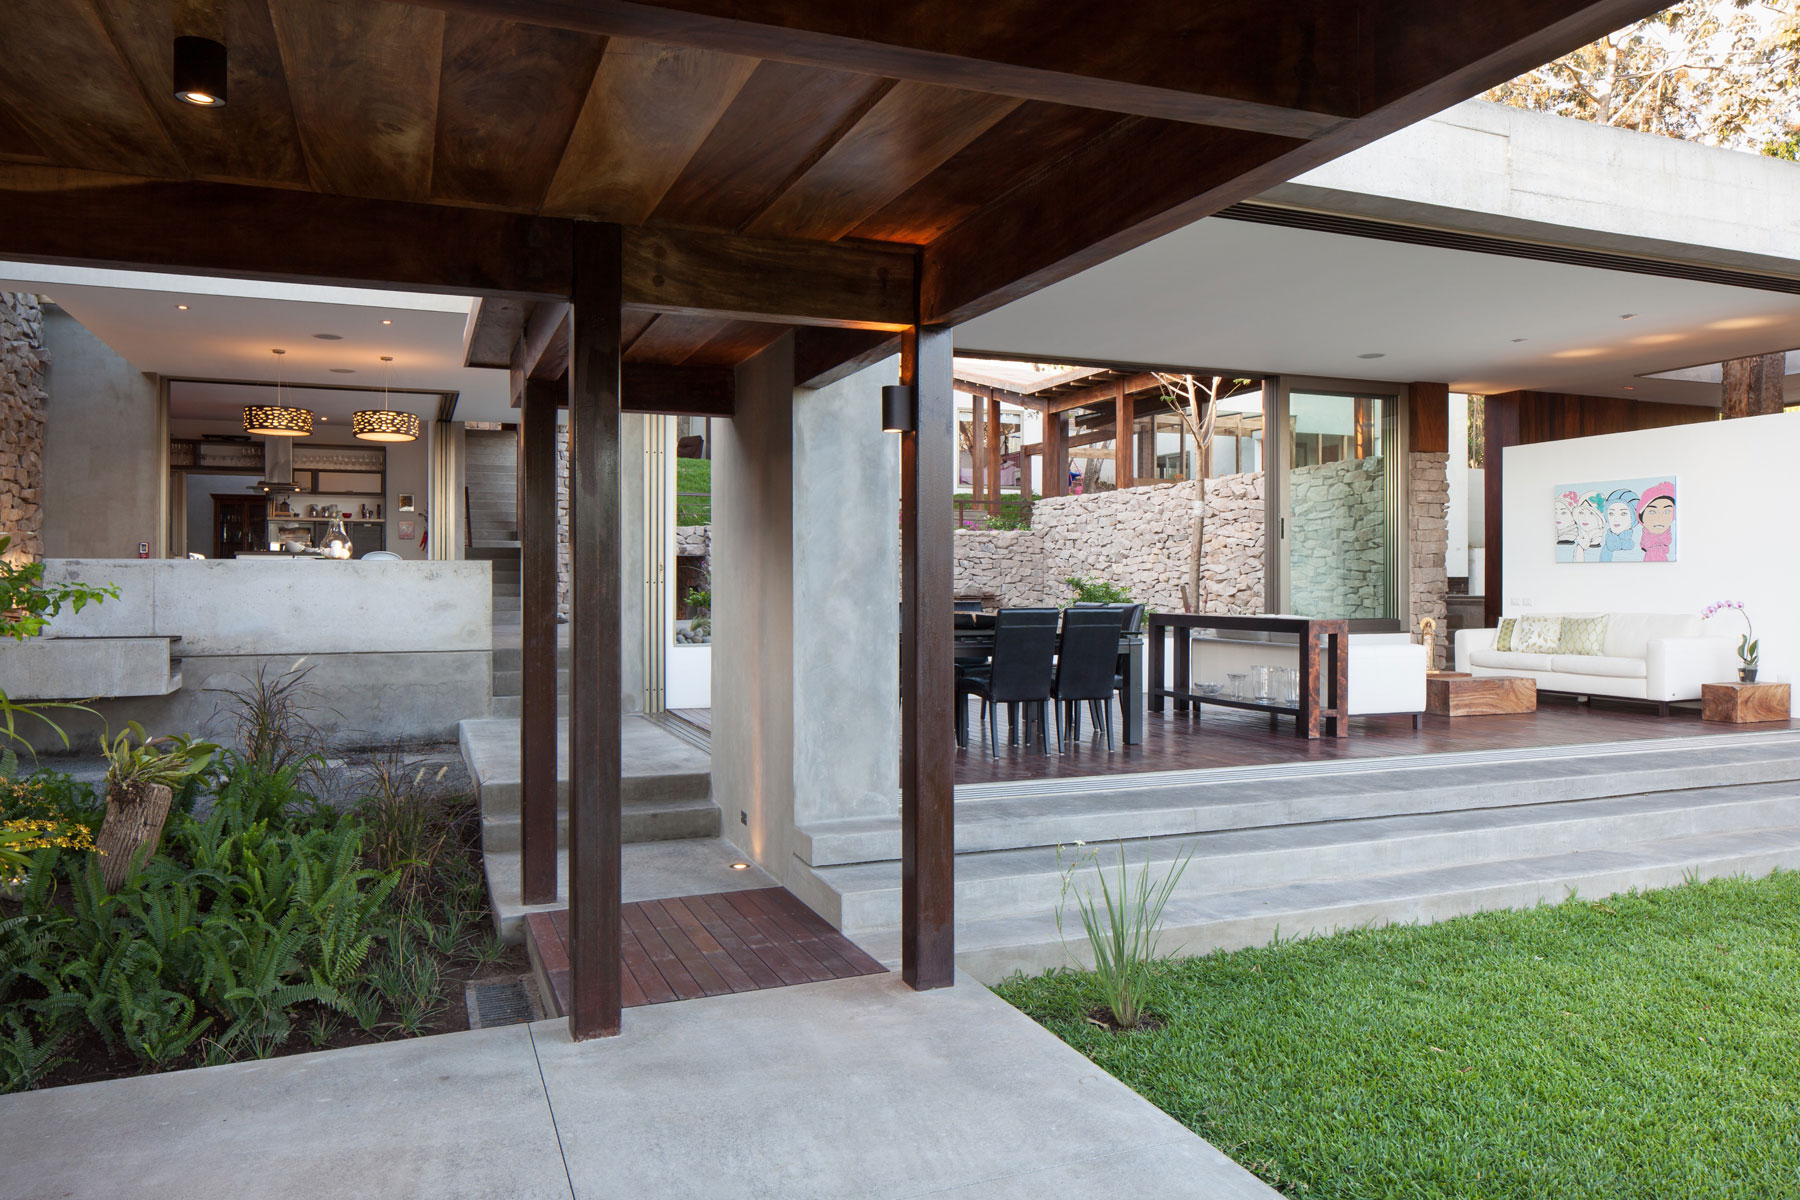 Modern rustic sensation of garden house in el salvador by for Modern house design blog